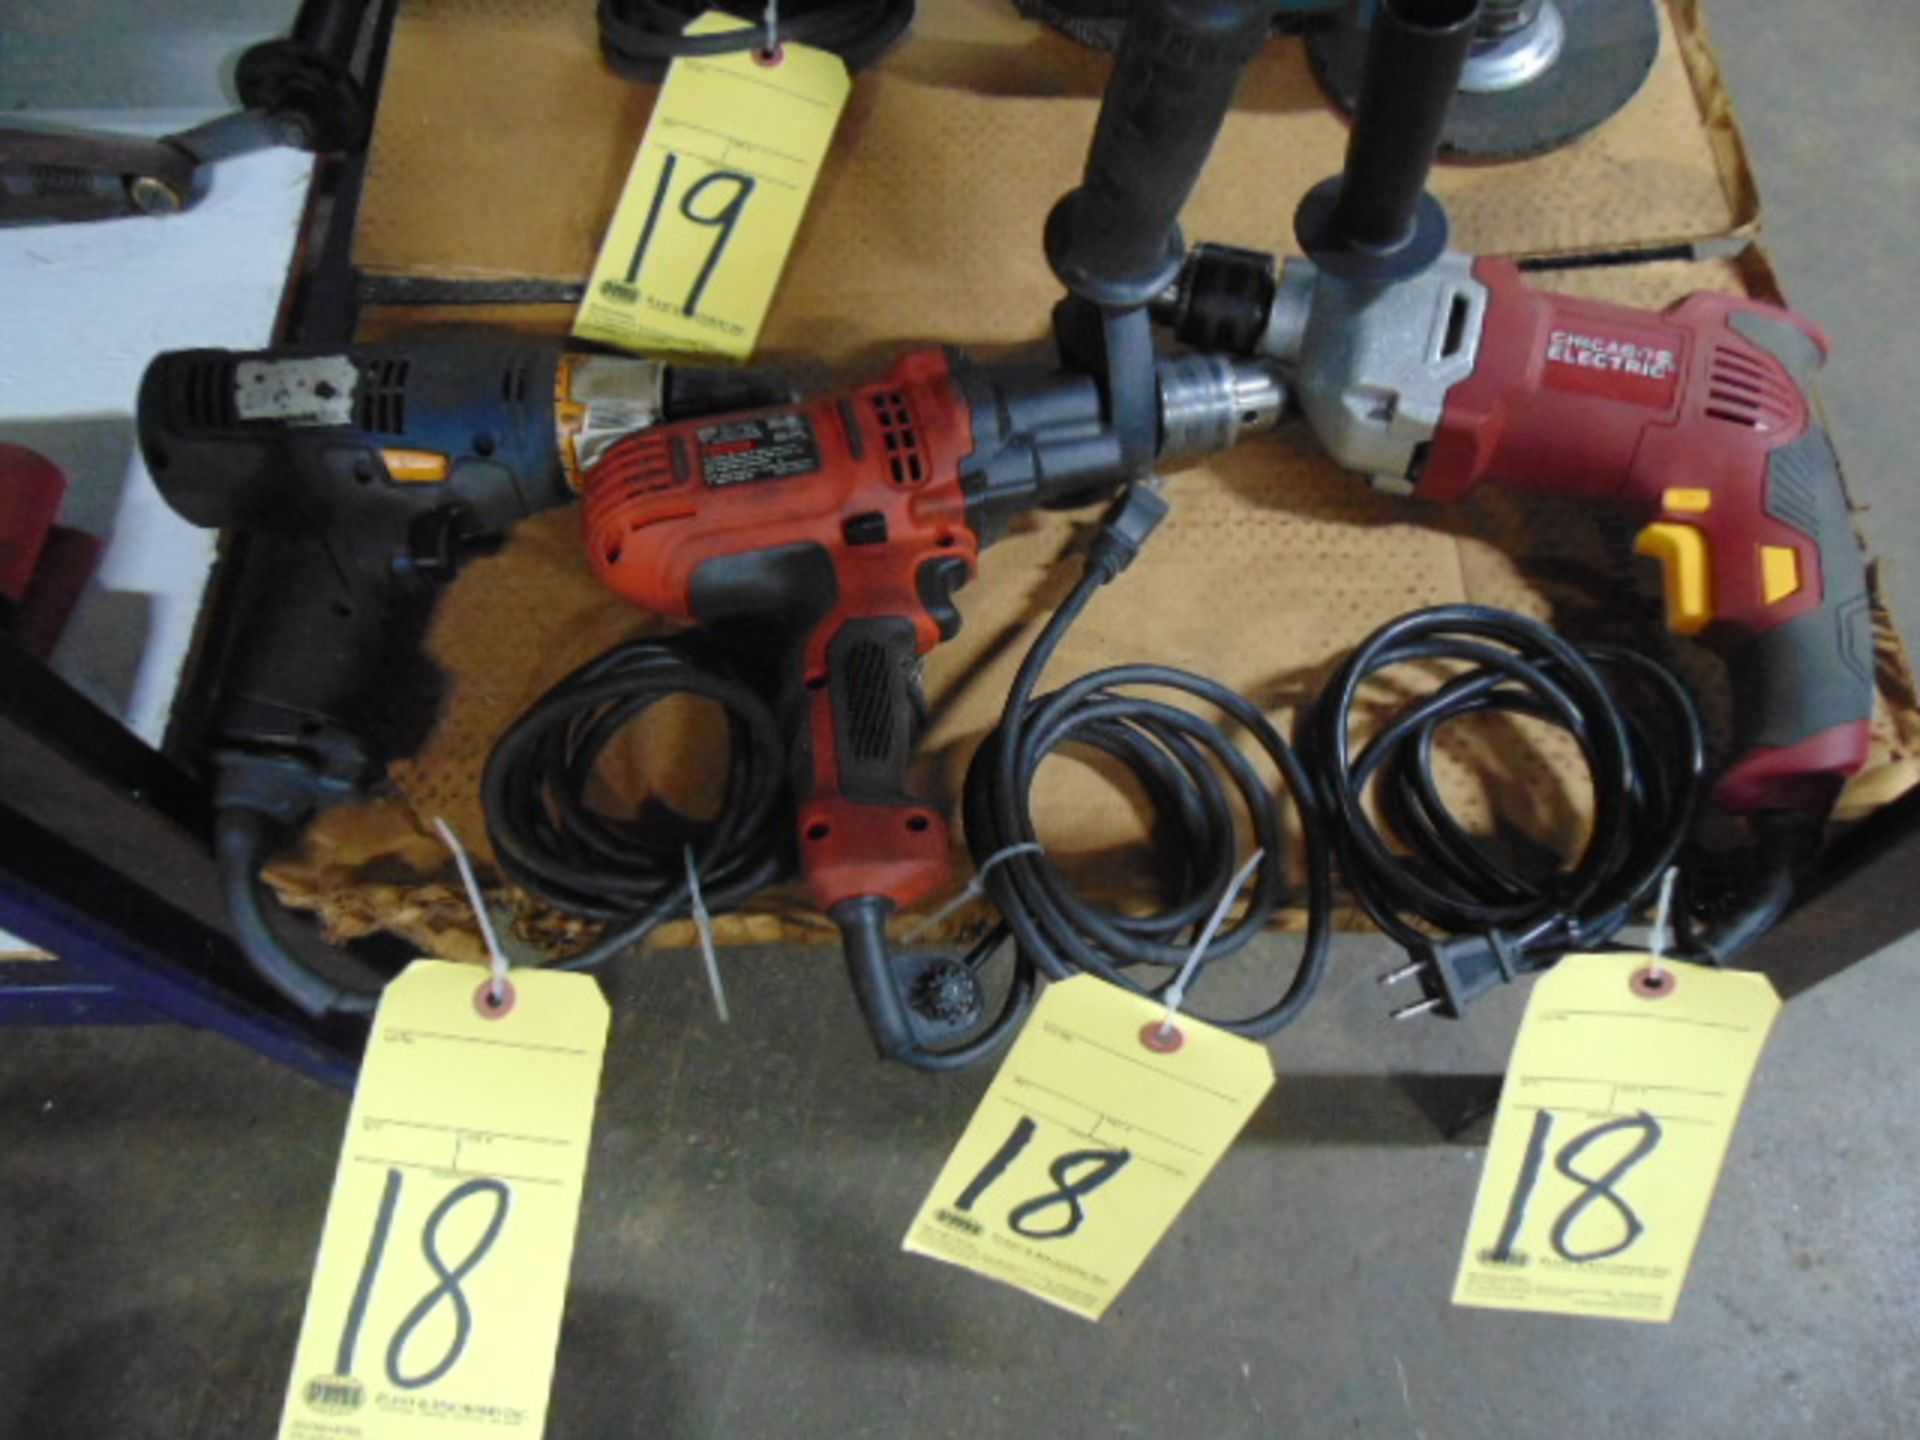 Lot 18 - LOT OF ELECTRIC DRILLS (3), assorted